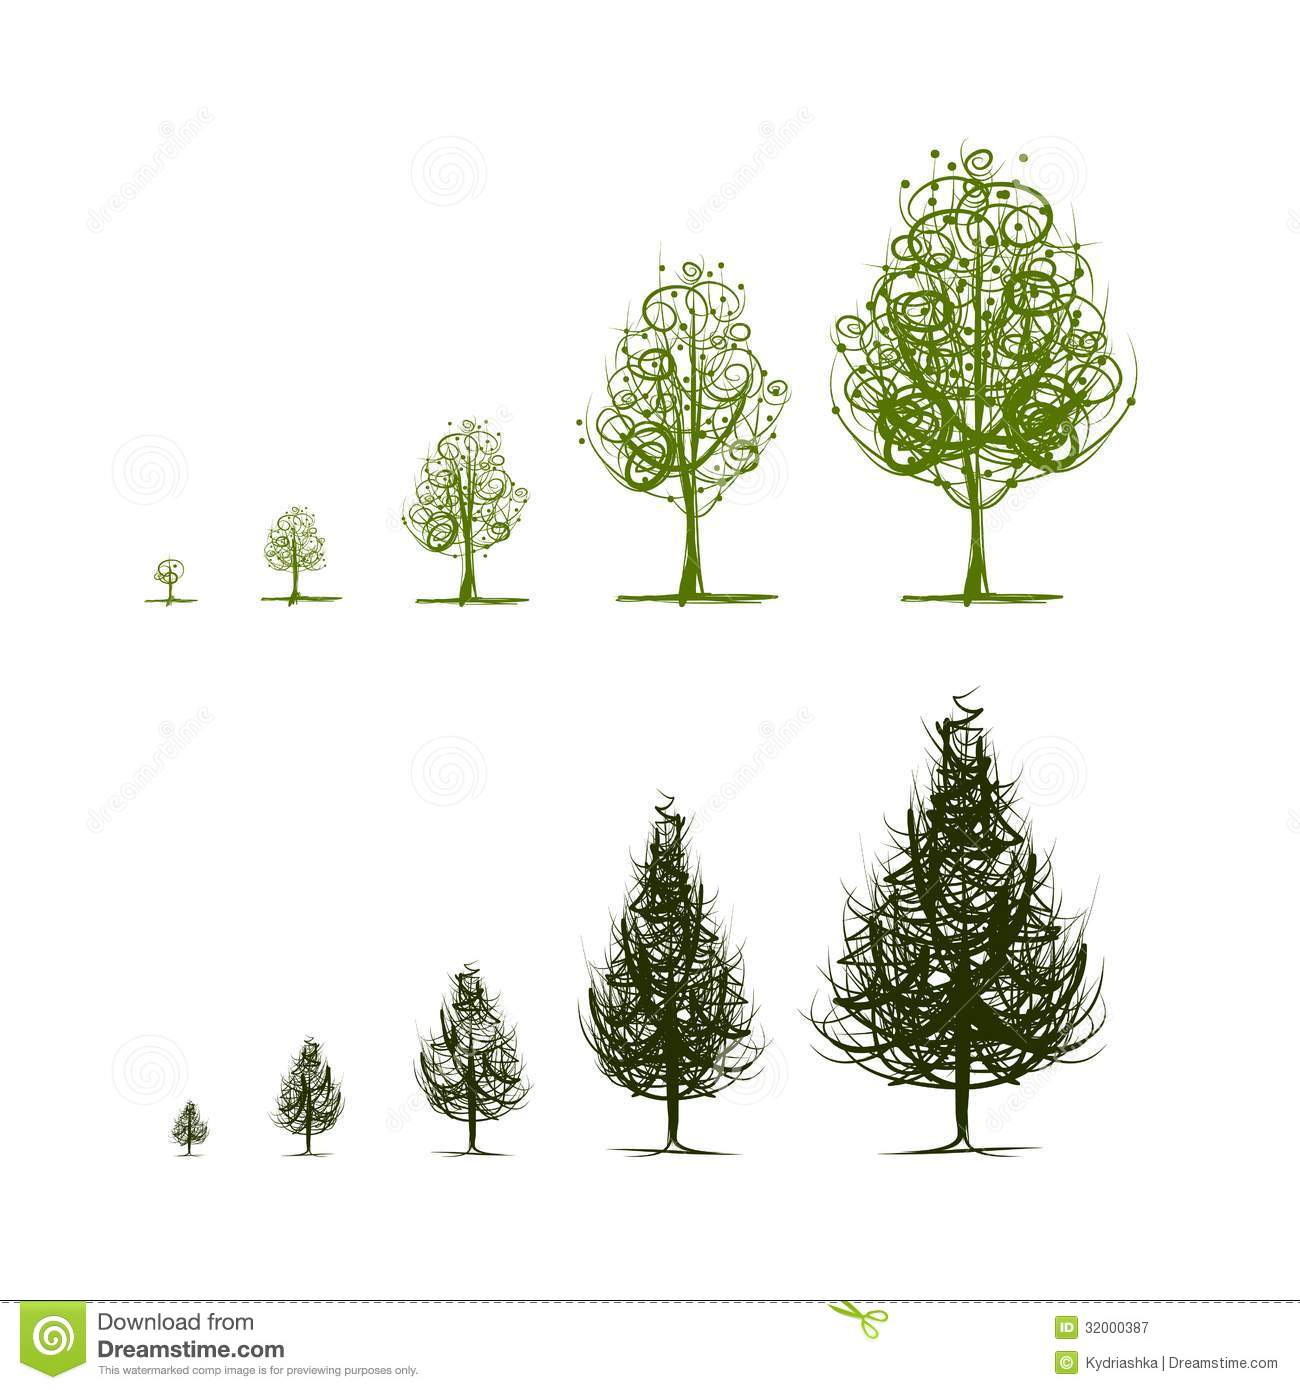 Stages Of Growing Tree For Your Design Royalty Free Stock Photography ...: www.dreamstime.com/royalty-free-stock-photography-stages-growing...